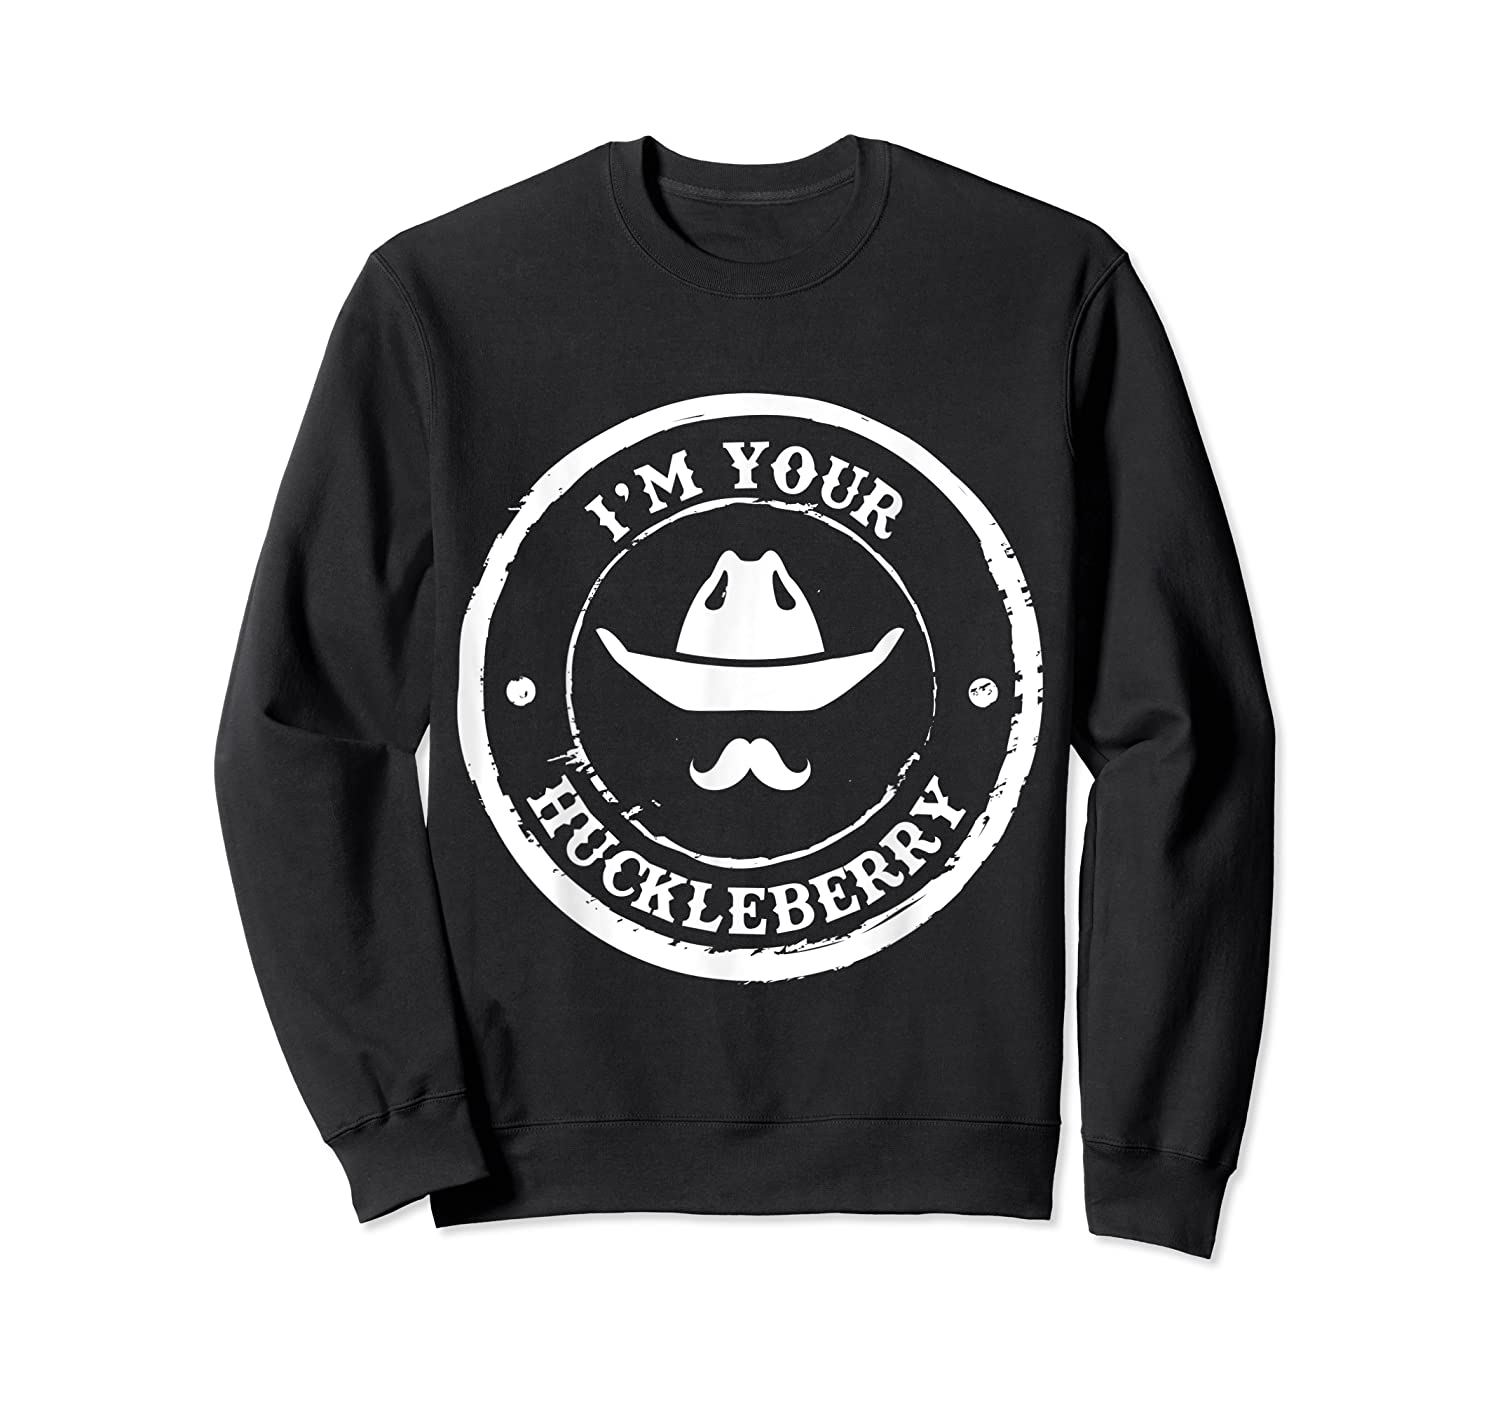 I M Your Huckleberry Old West T Shirt For Cow Mustache Crewneck Sweater